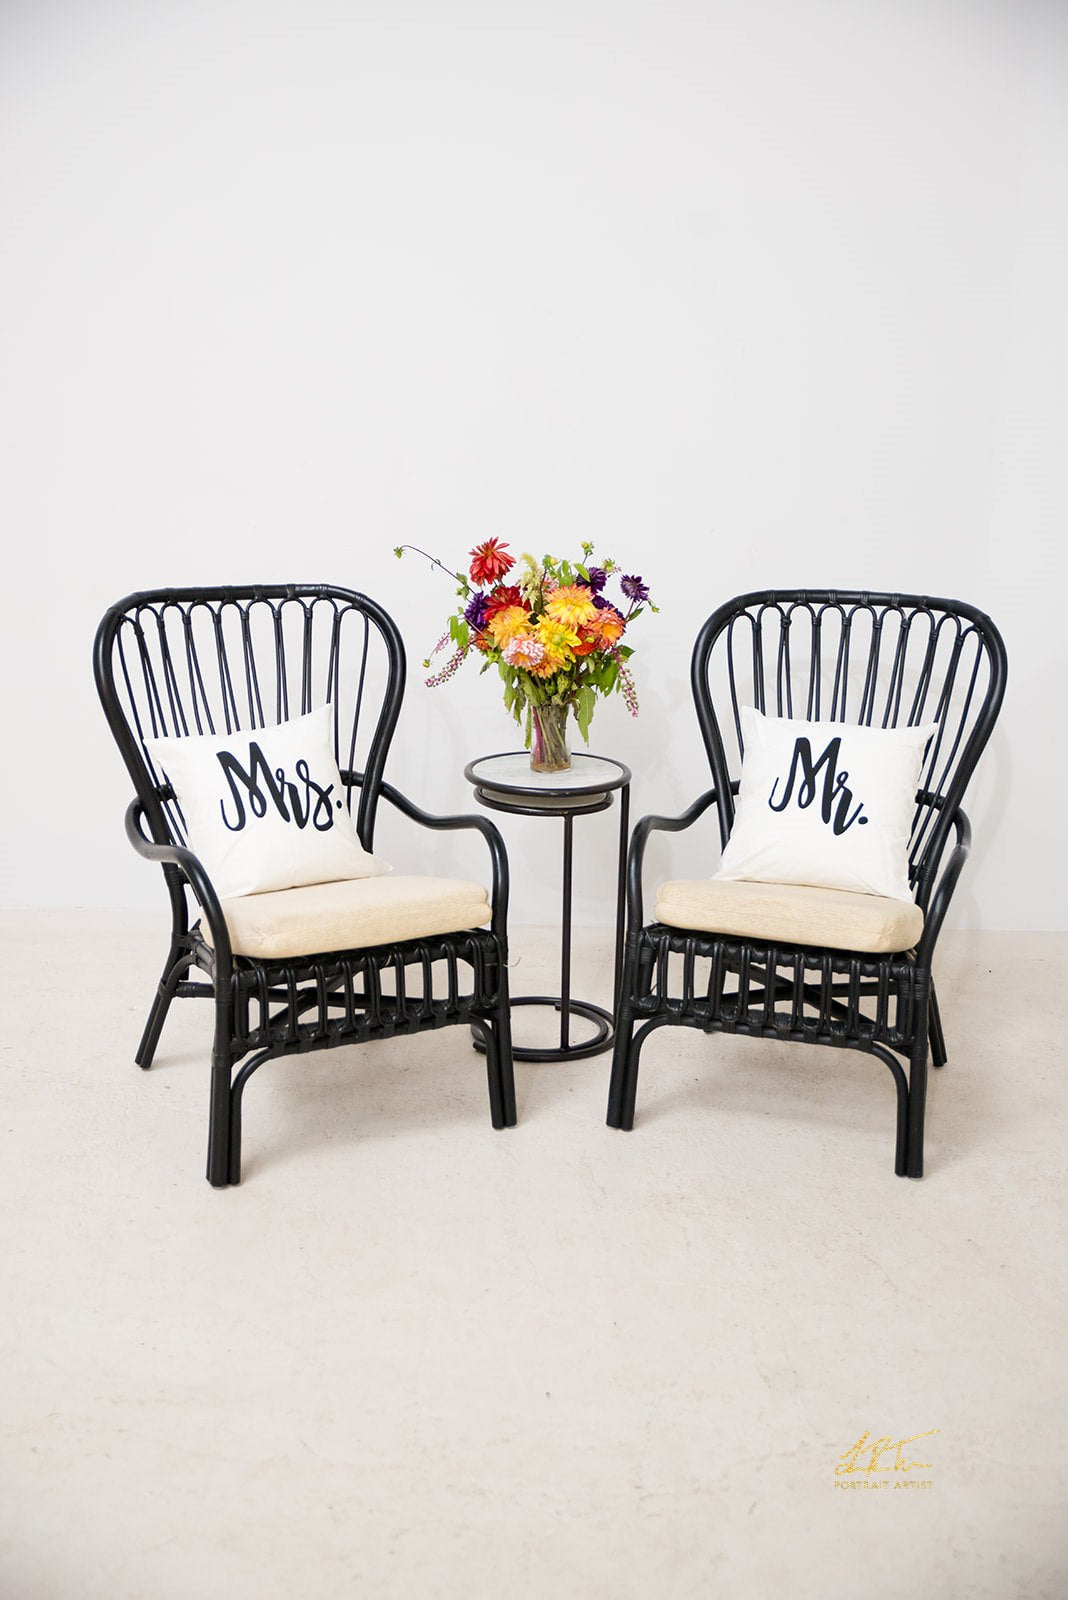 Wicker Chairs - The Wedding Market